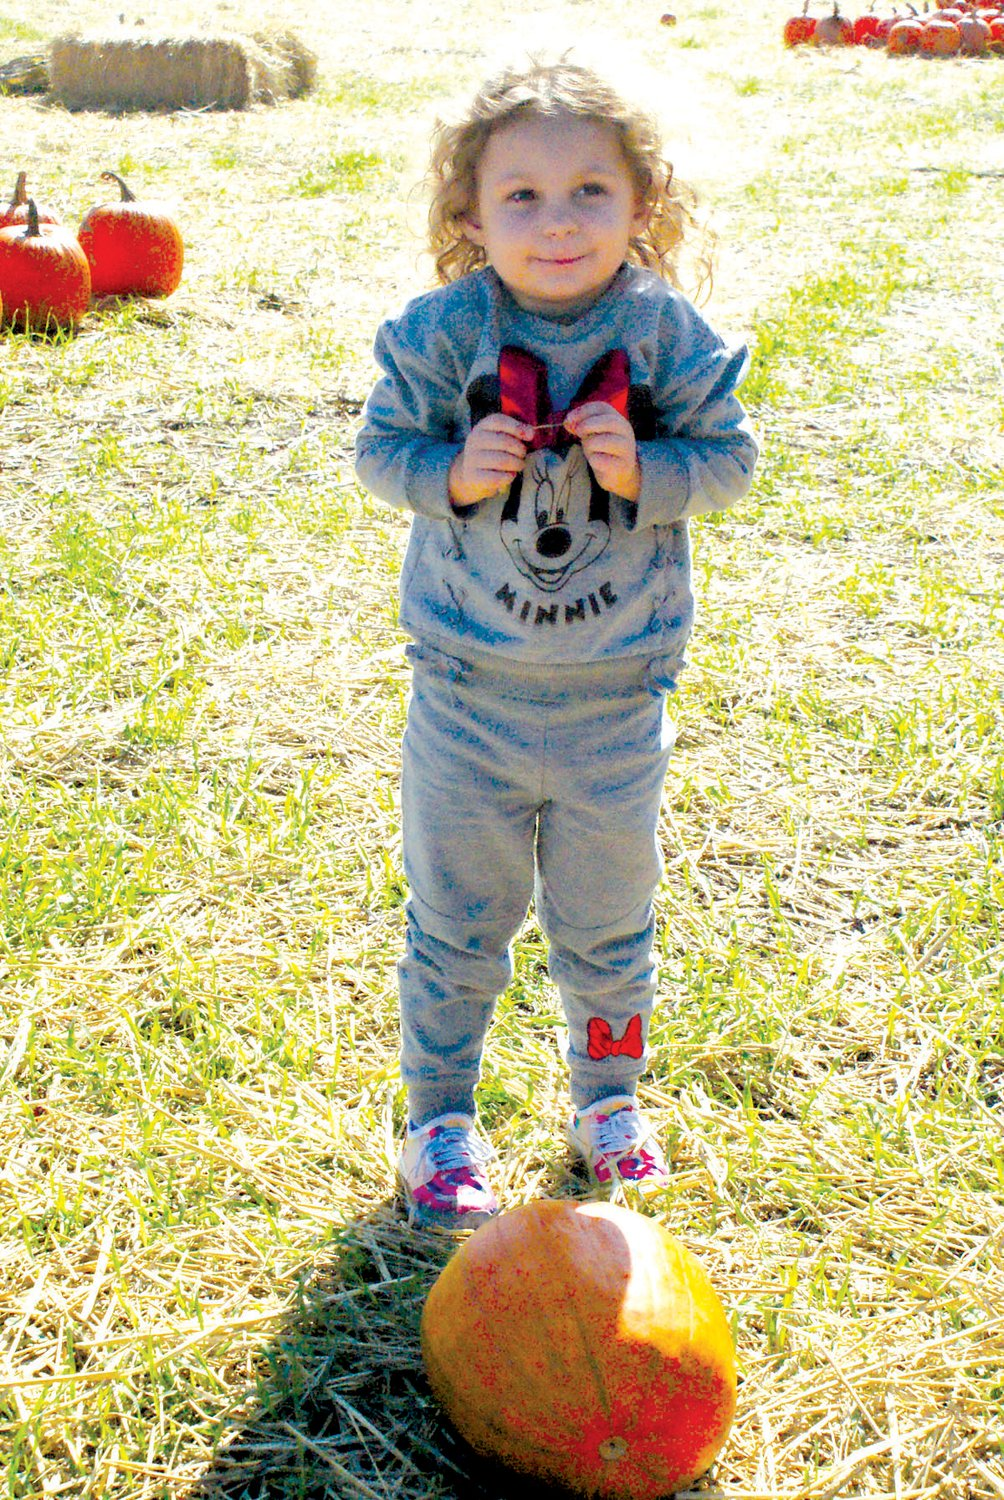 AWESOME DAY: Juanita Creamer, 3, of West Warwick was excited